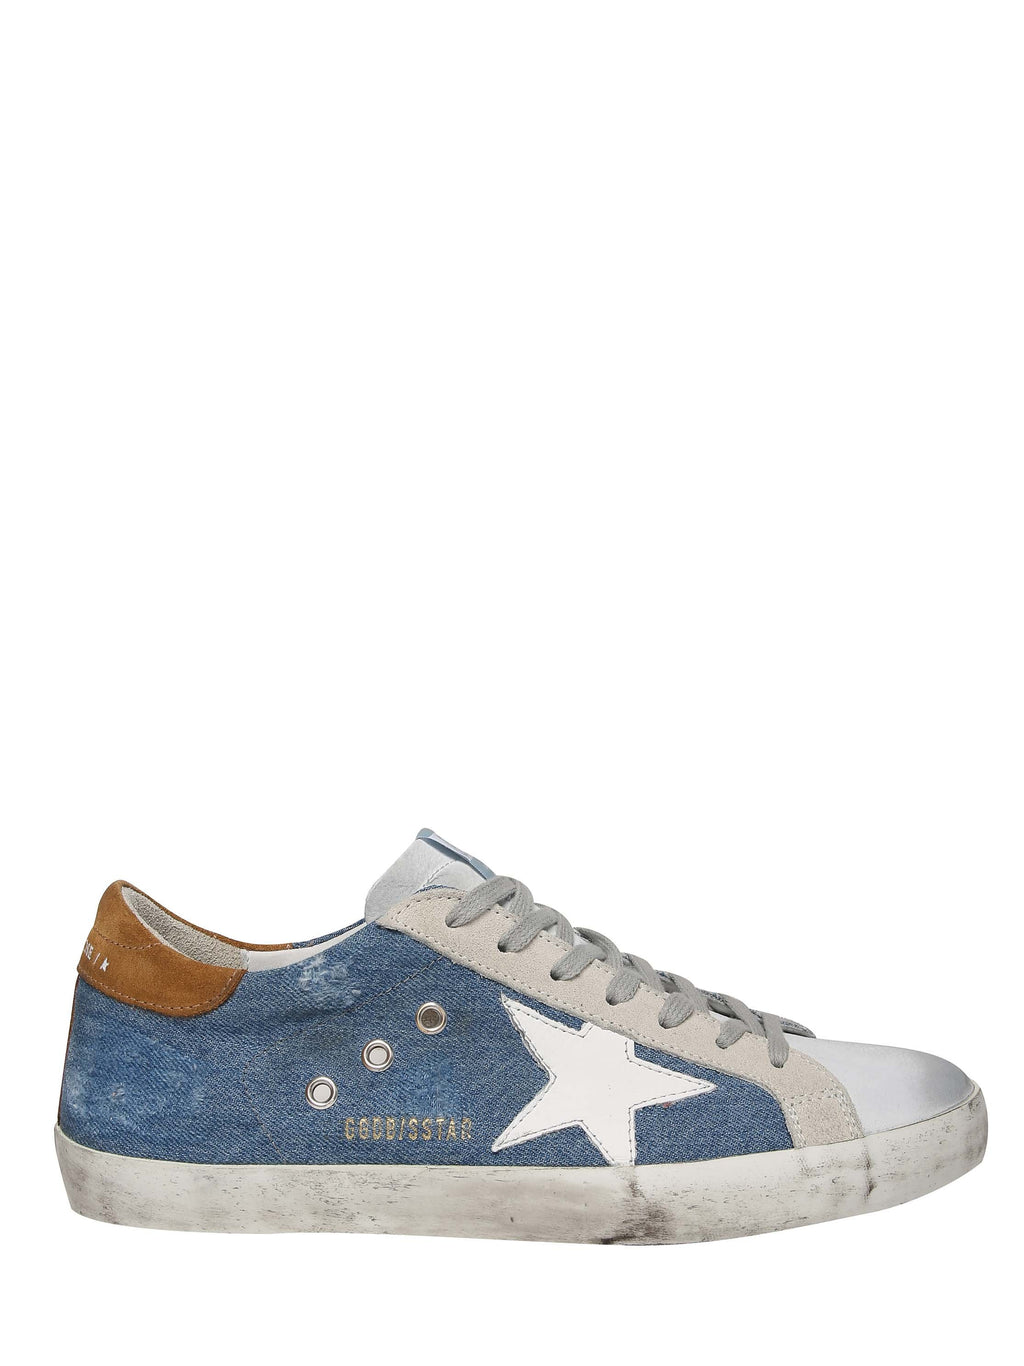 Super star denim sneakers